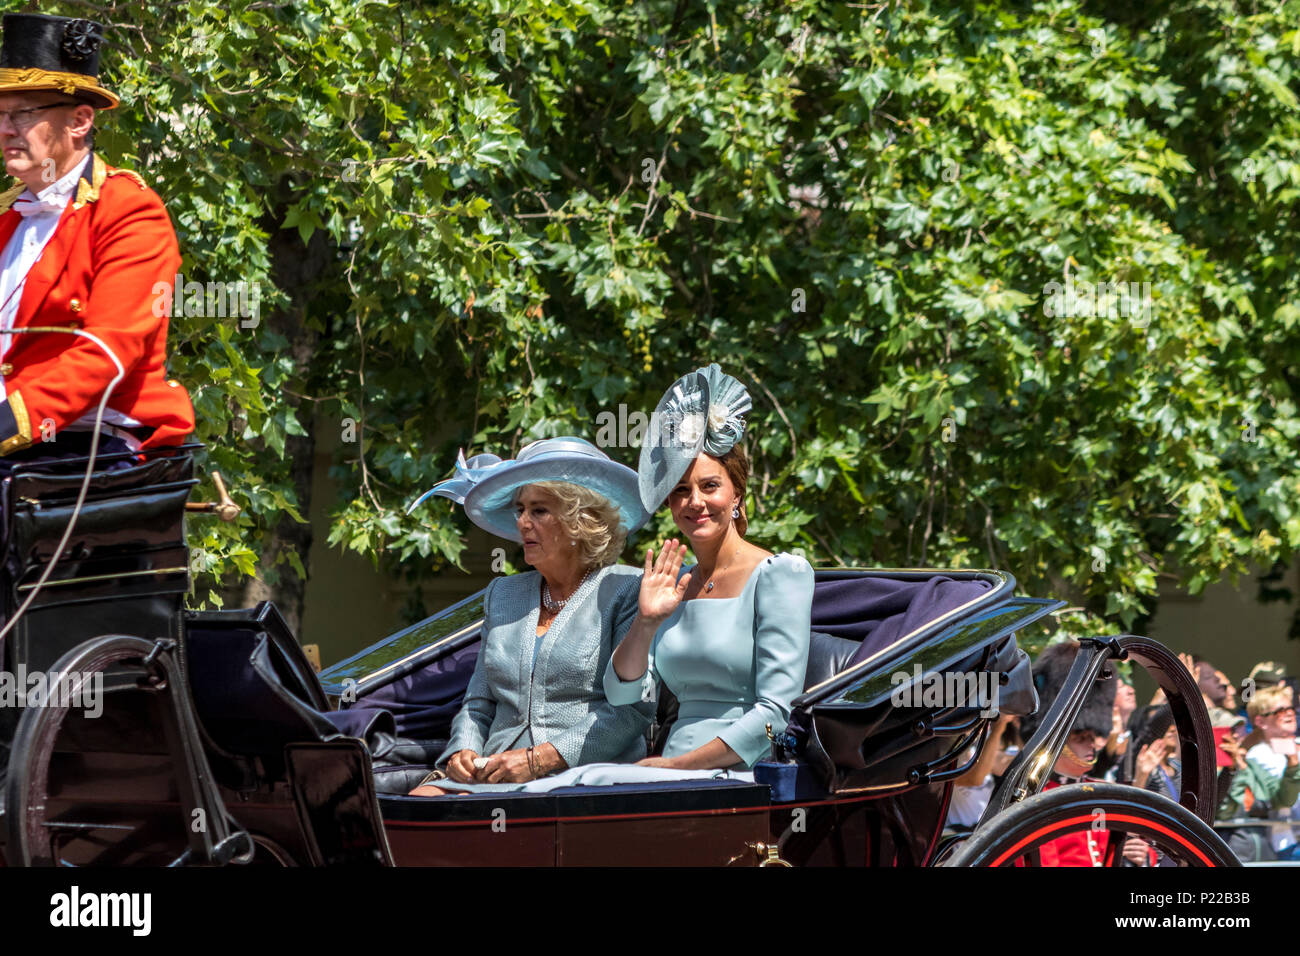 Duchess Of Cambridge,Kate Middleton & Duchess Of Cornwall,Camilla,ride together in a carriage, wave to the crowds at The Trooping Of The Colour 2018 - Stock Image